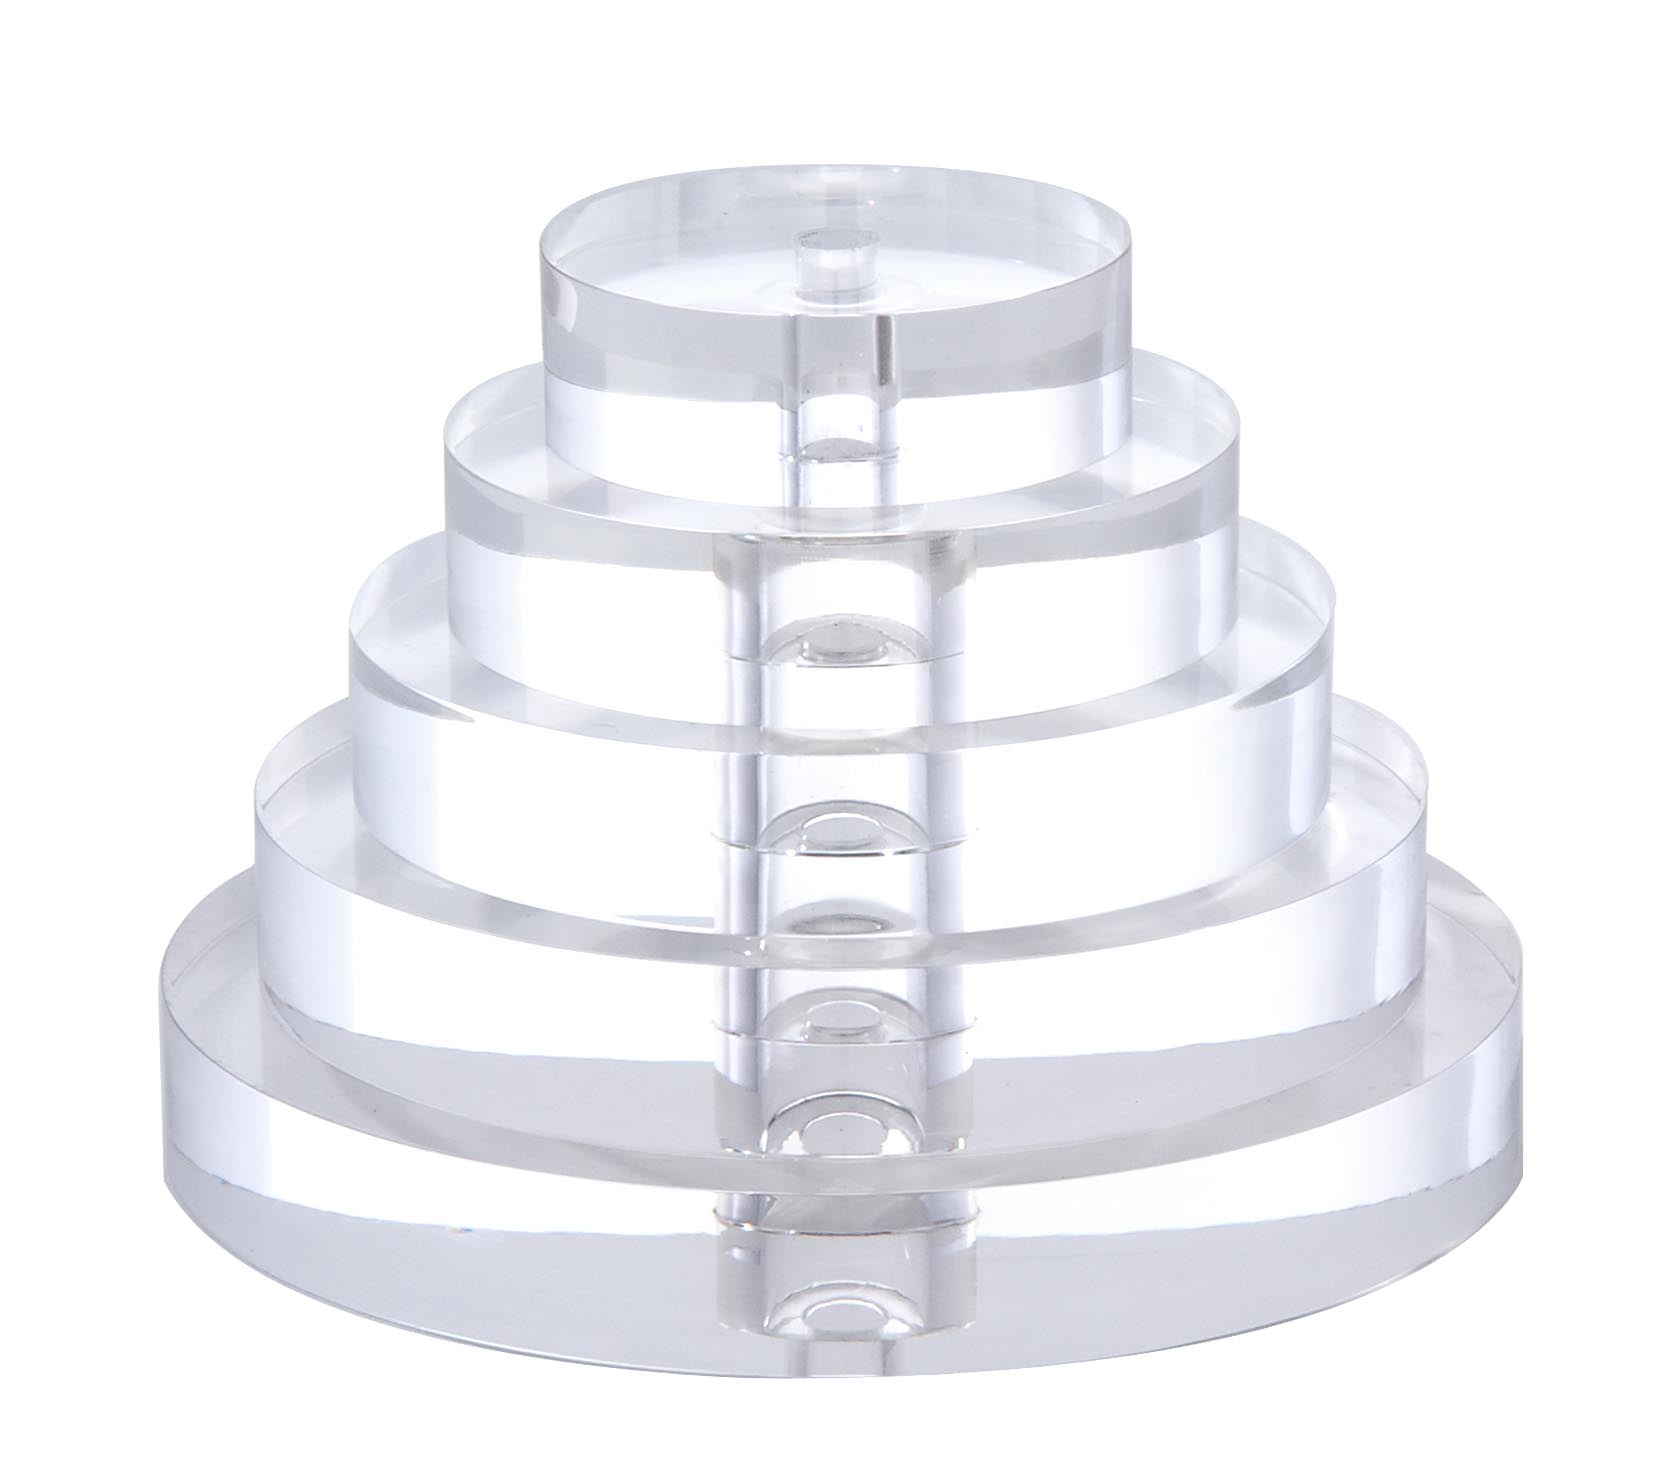 Lamps P: Clear, Round Acrylic Lamp Breaks 10380